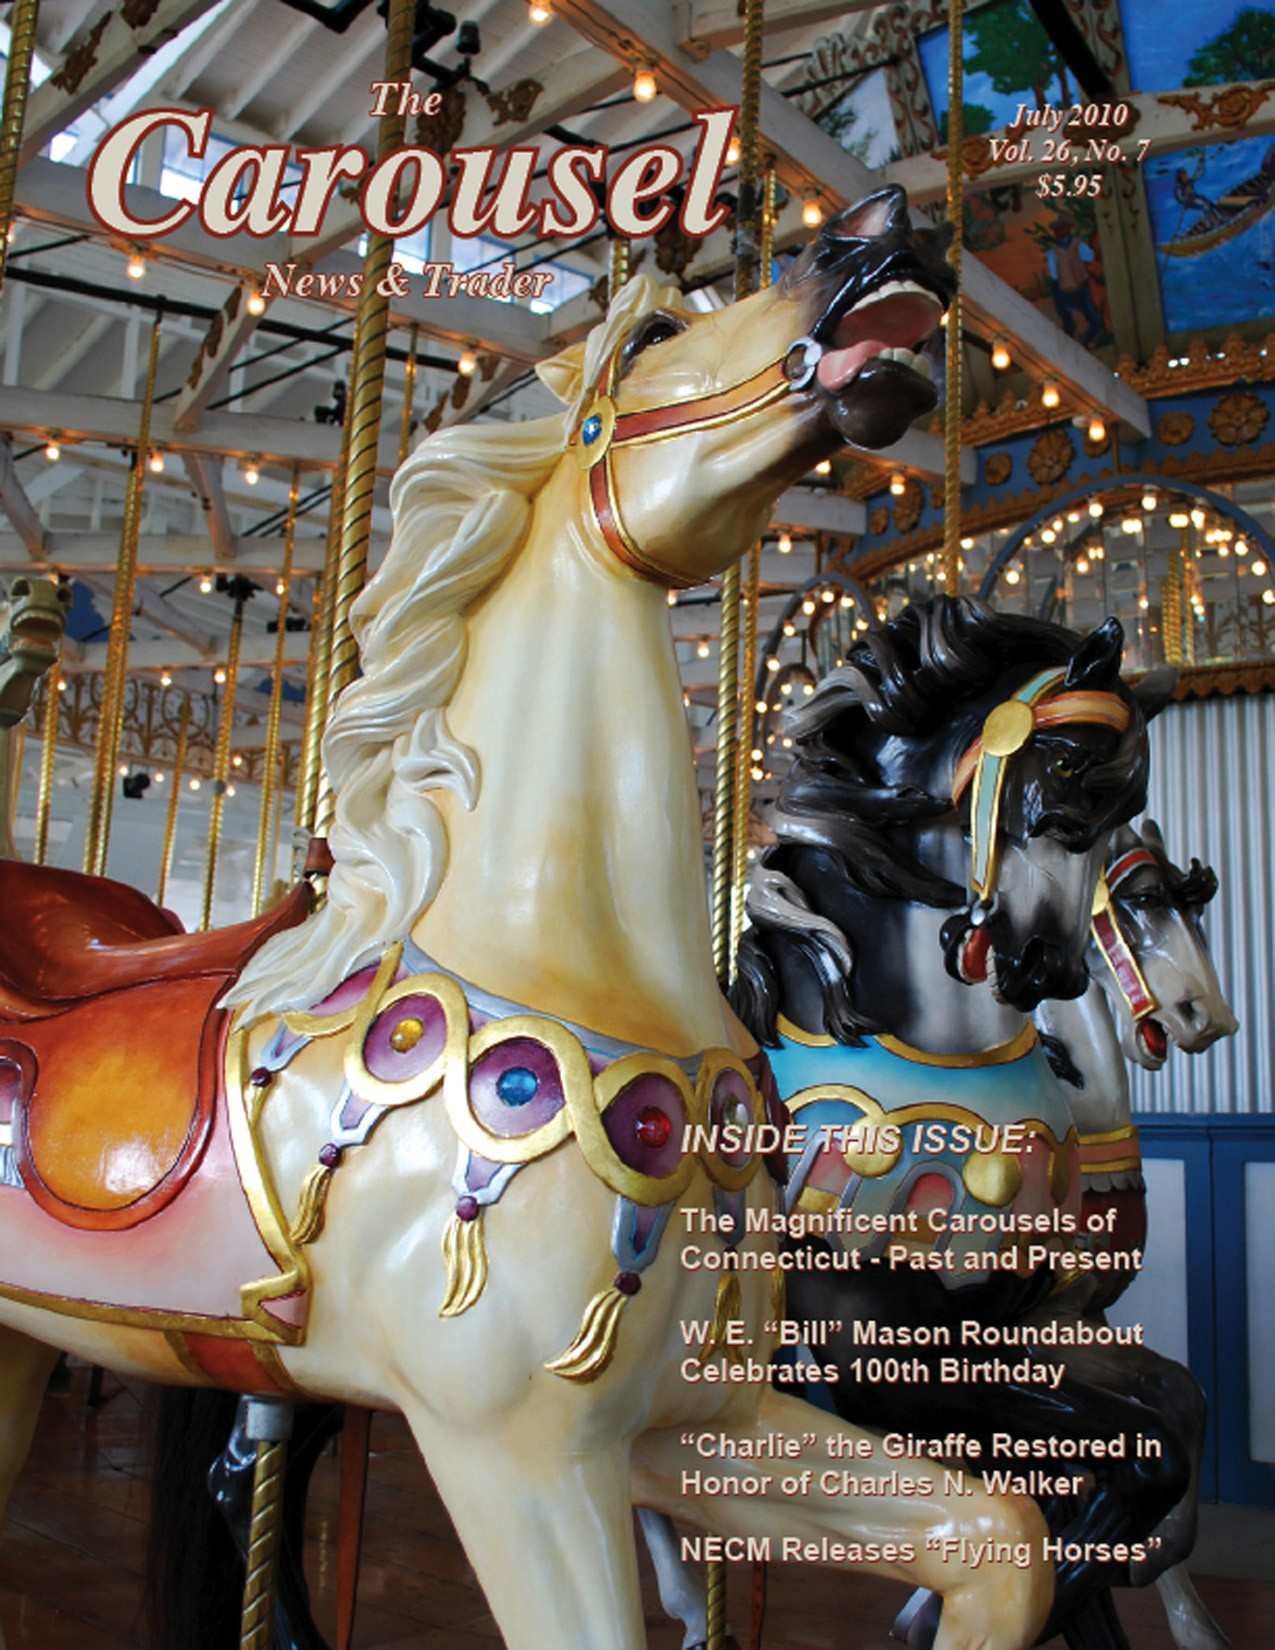 Issue No. 7, Vol. 26 – July 2010